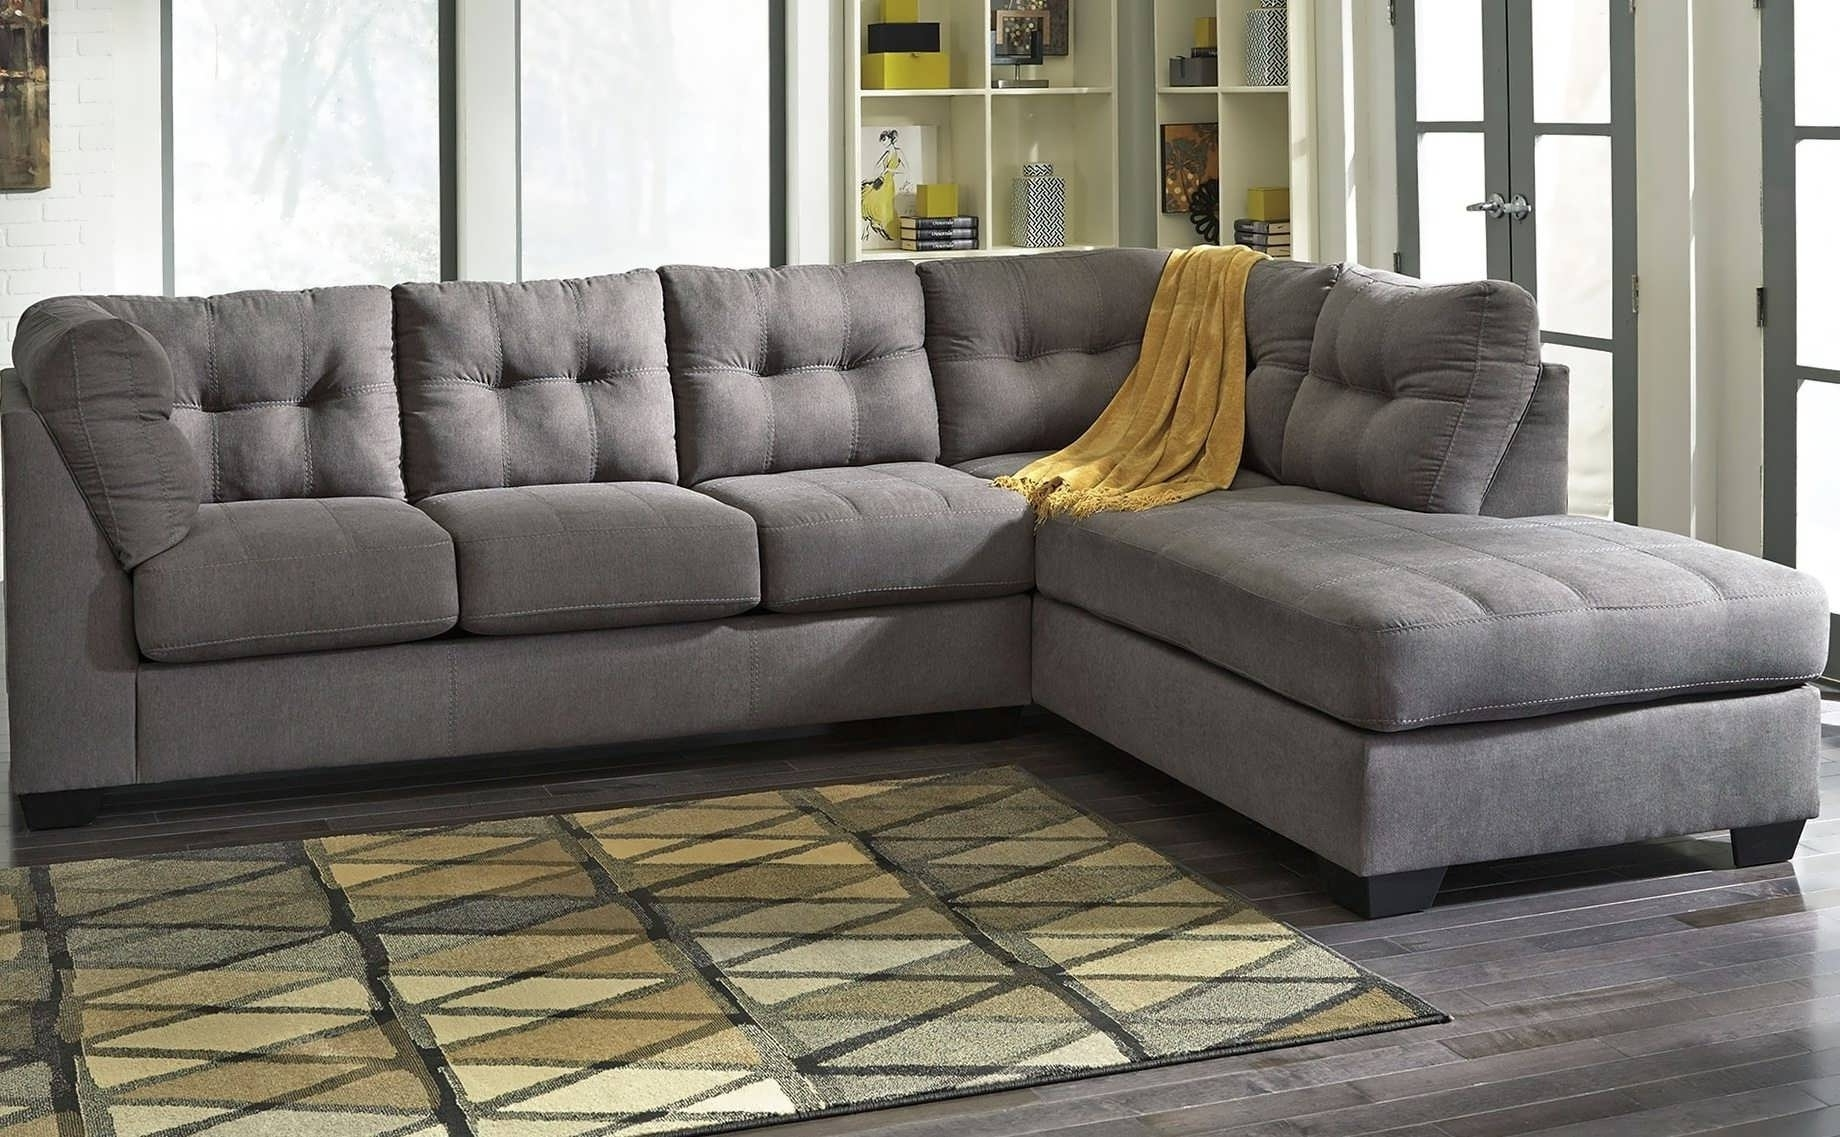 Well Liked Sofa : Grey Sectional With Chaise Oversized Sectional Sofa White Pertaining To Gray Sectionals With Chaise (View 15 of 15)